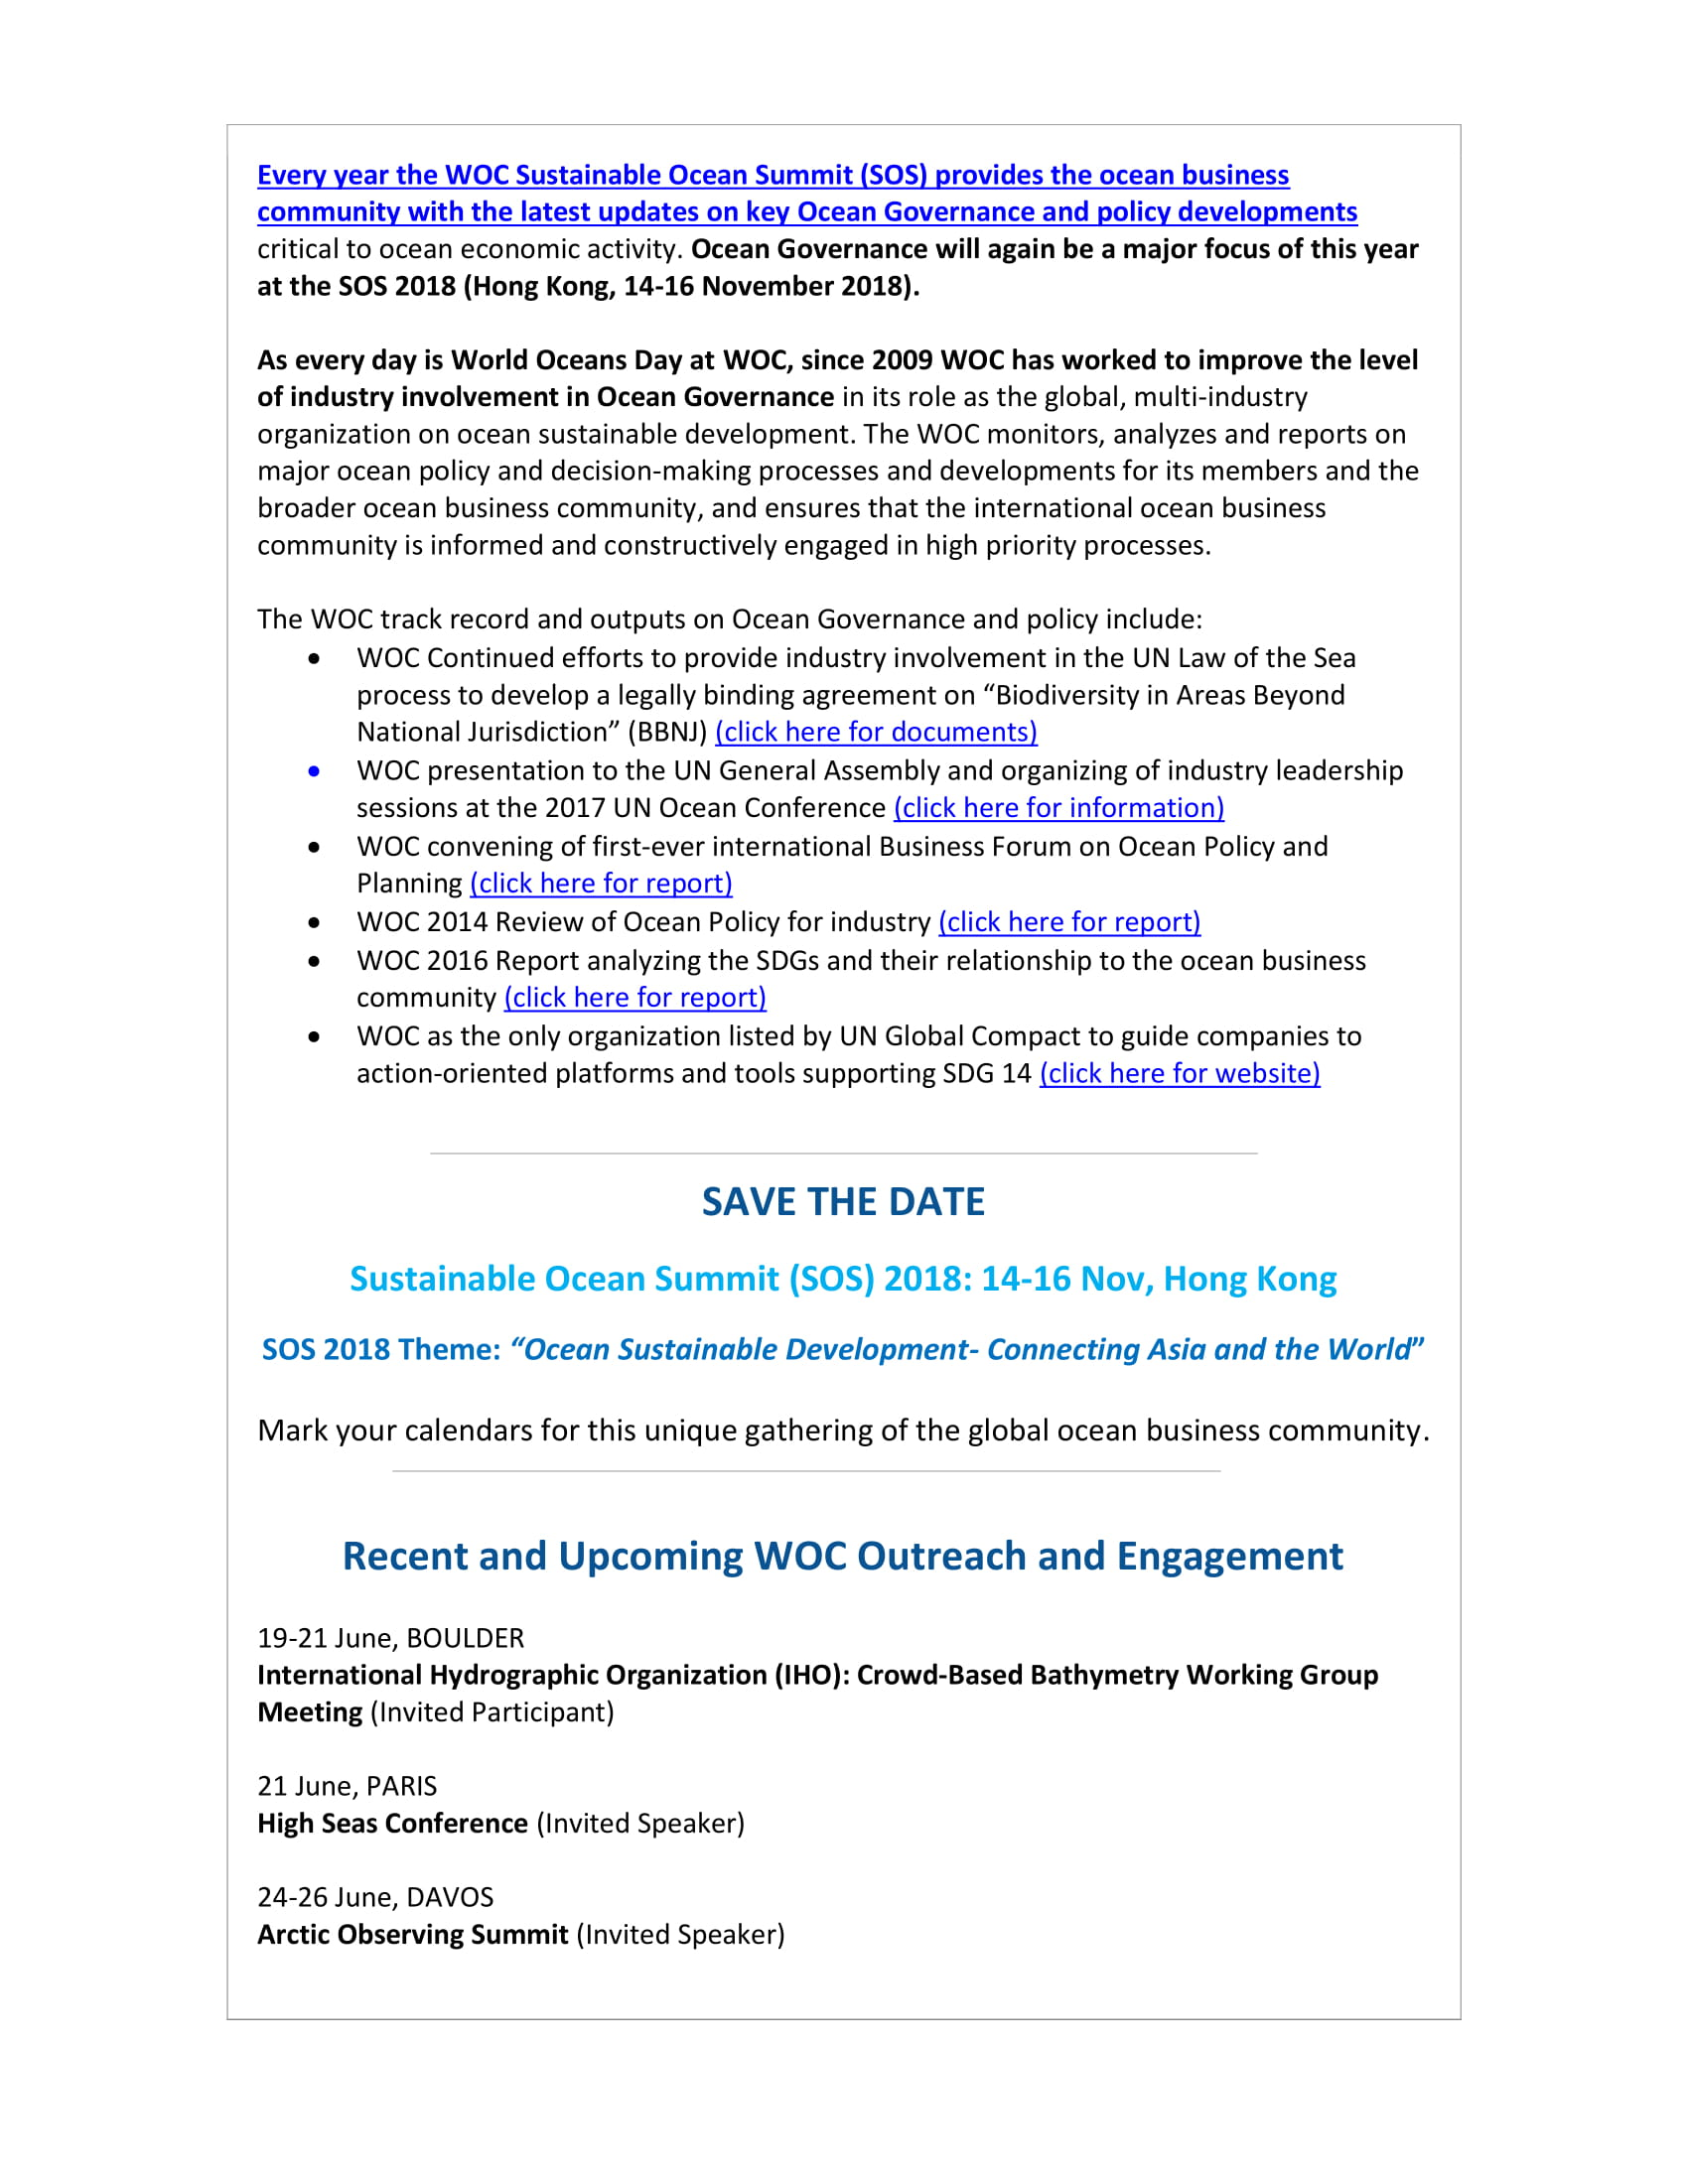 Ocean Governance and the Private Sector - 11 June 2018